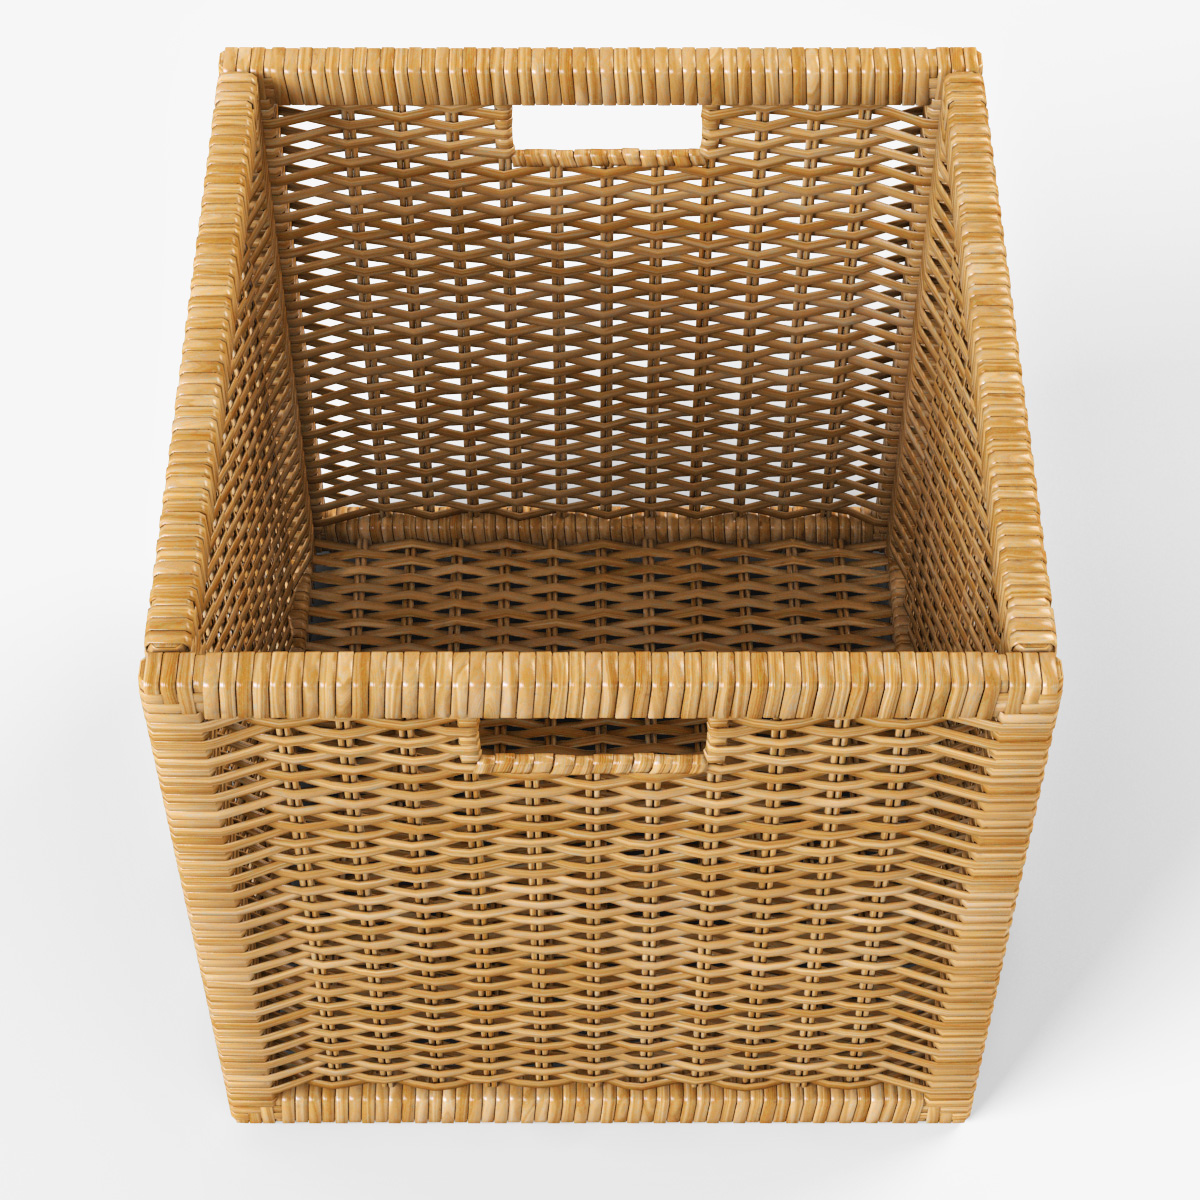 rattan basket ikea branas 3d model. Black Bedroom Furniture Sets. Home Design Ideas